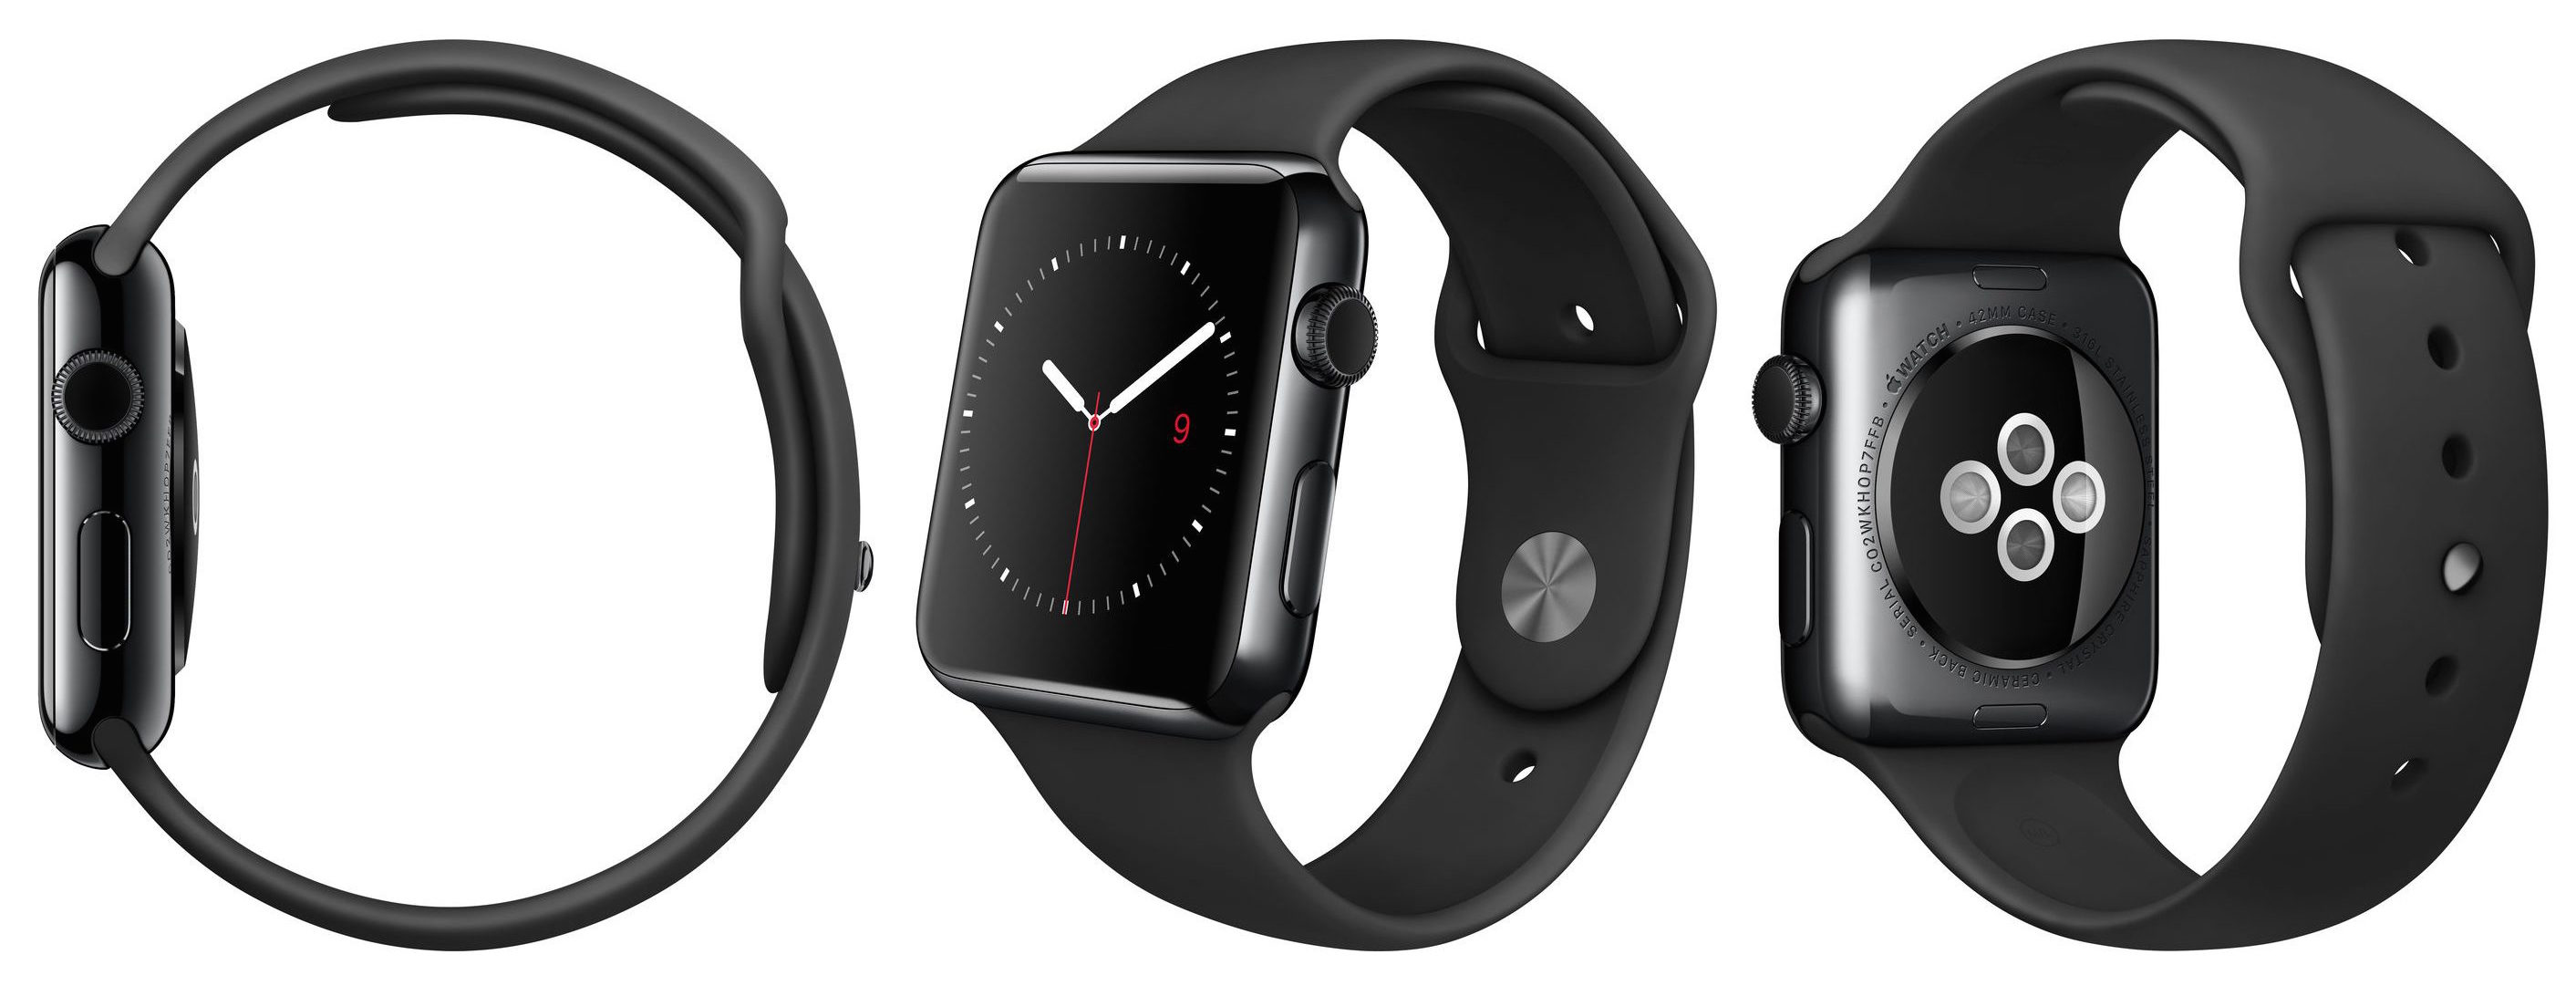 apple-watch-space-black-stainless-steel